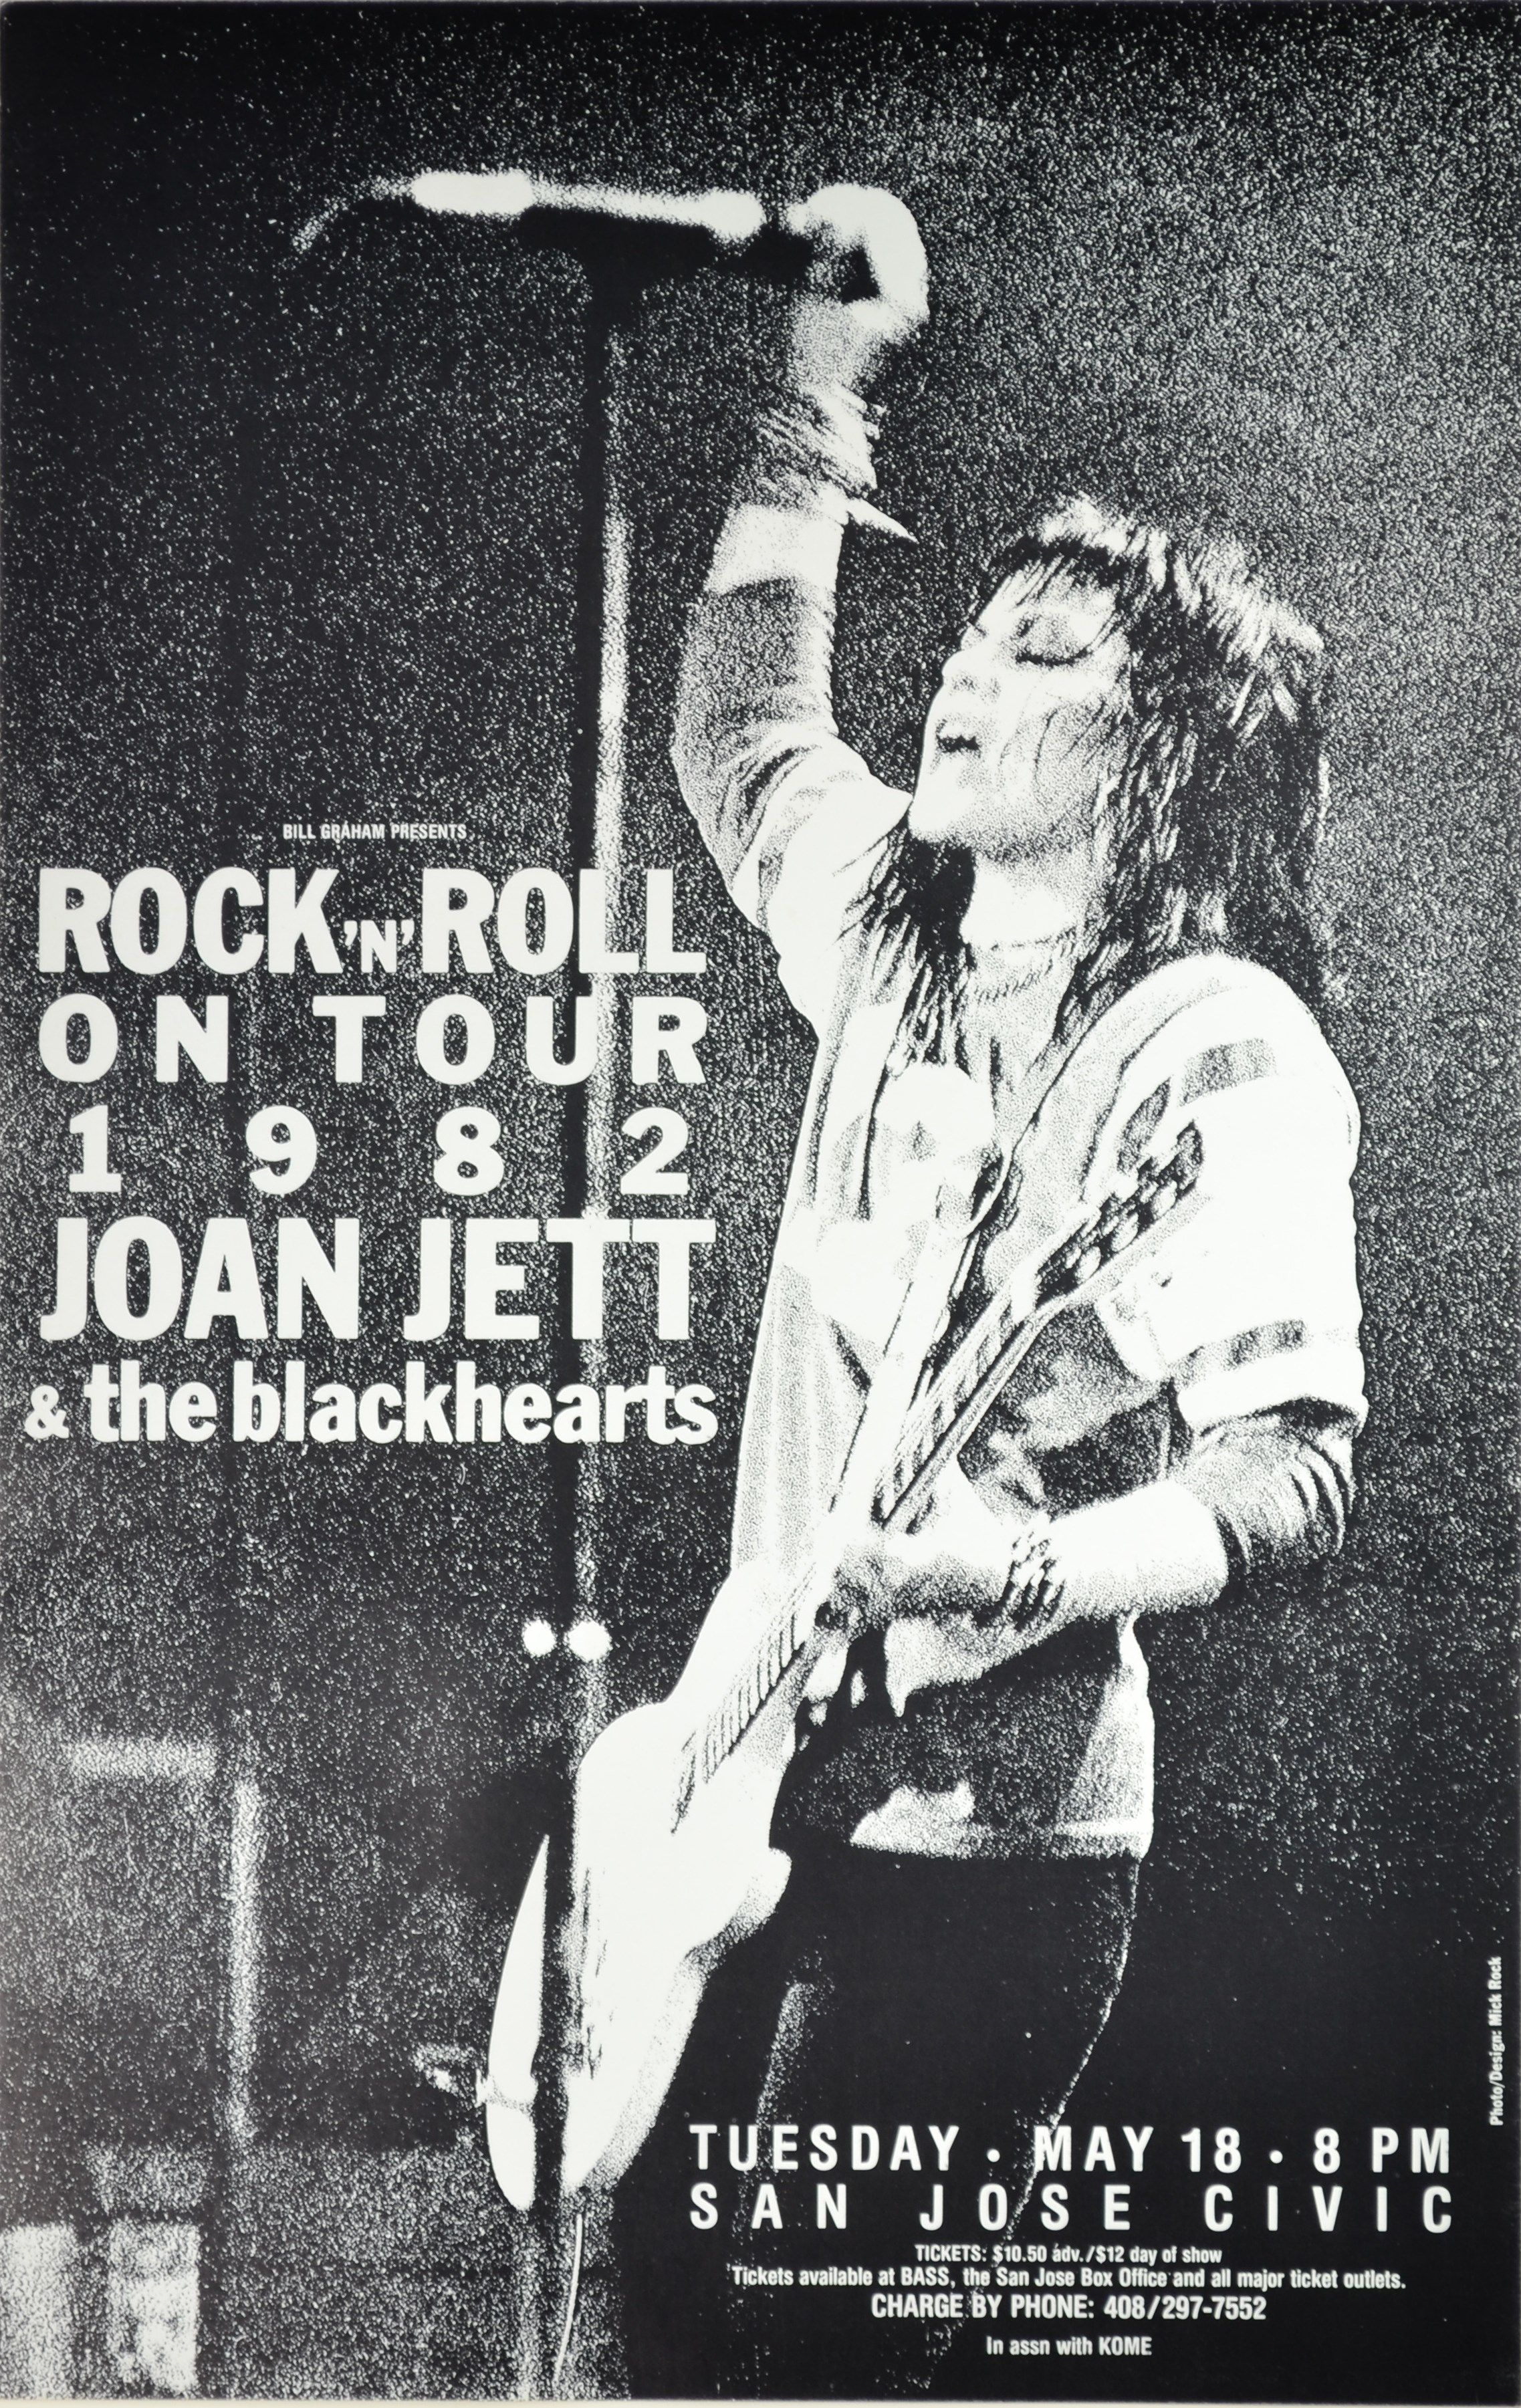 Here is a Joan Jett concert poster from Cicic Auditorium, San Jose, 1982.